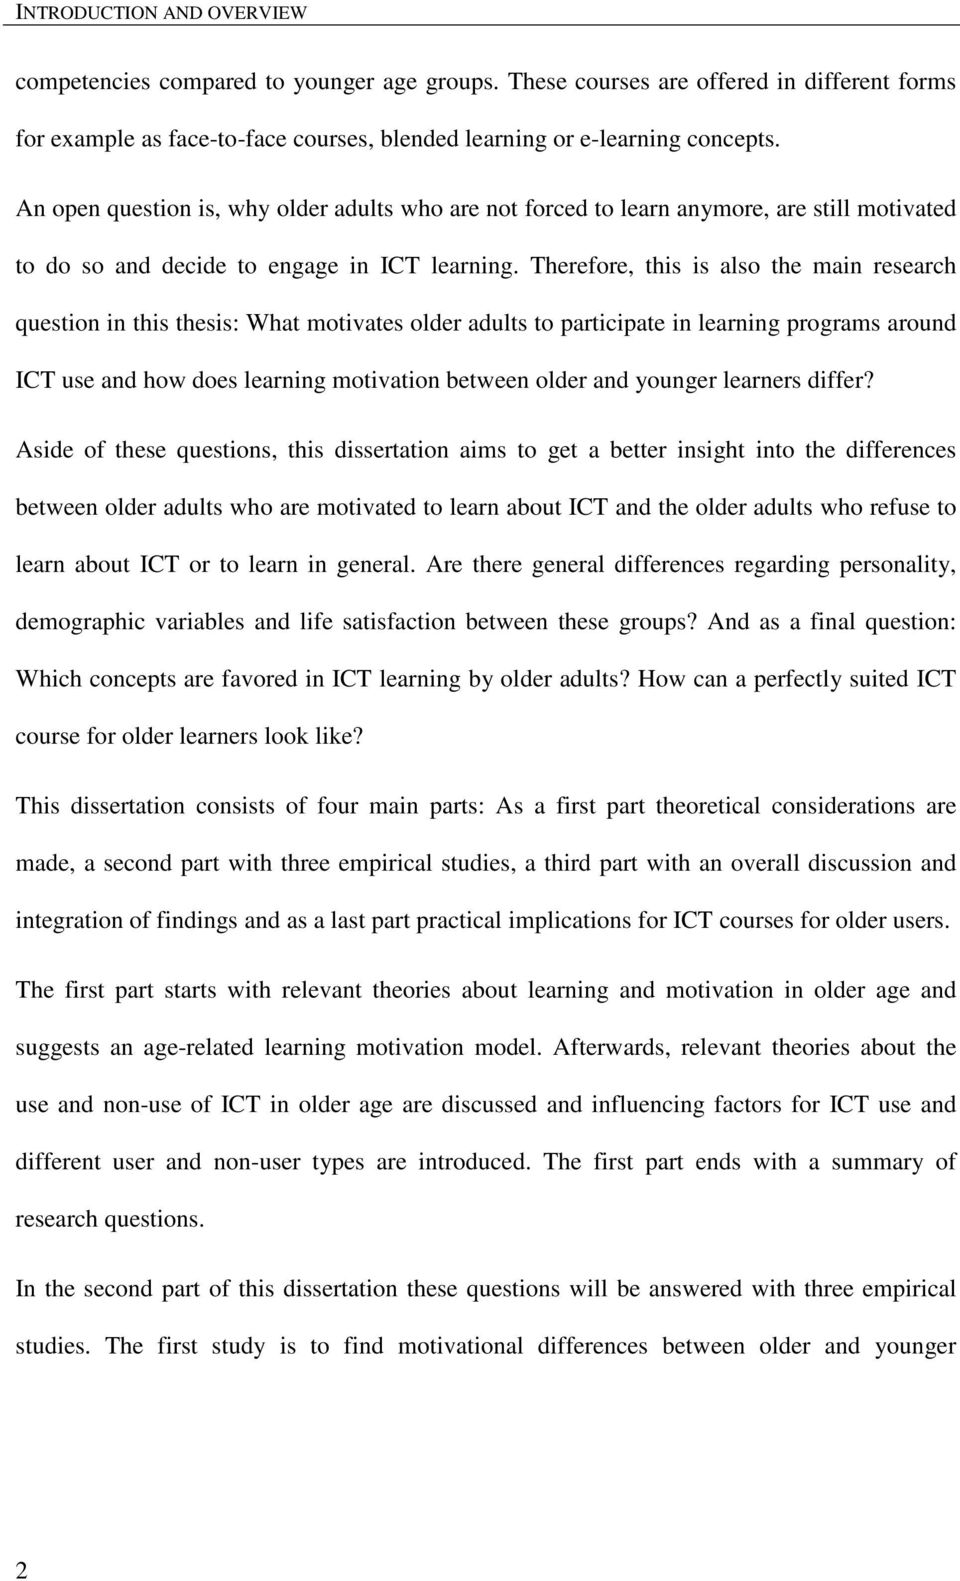 Therefore, this is also the main research question in this thesis: What motivates older adults to participate in learning programs around ICT use and how does learning motivation between older and